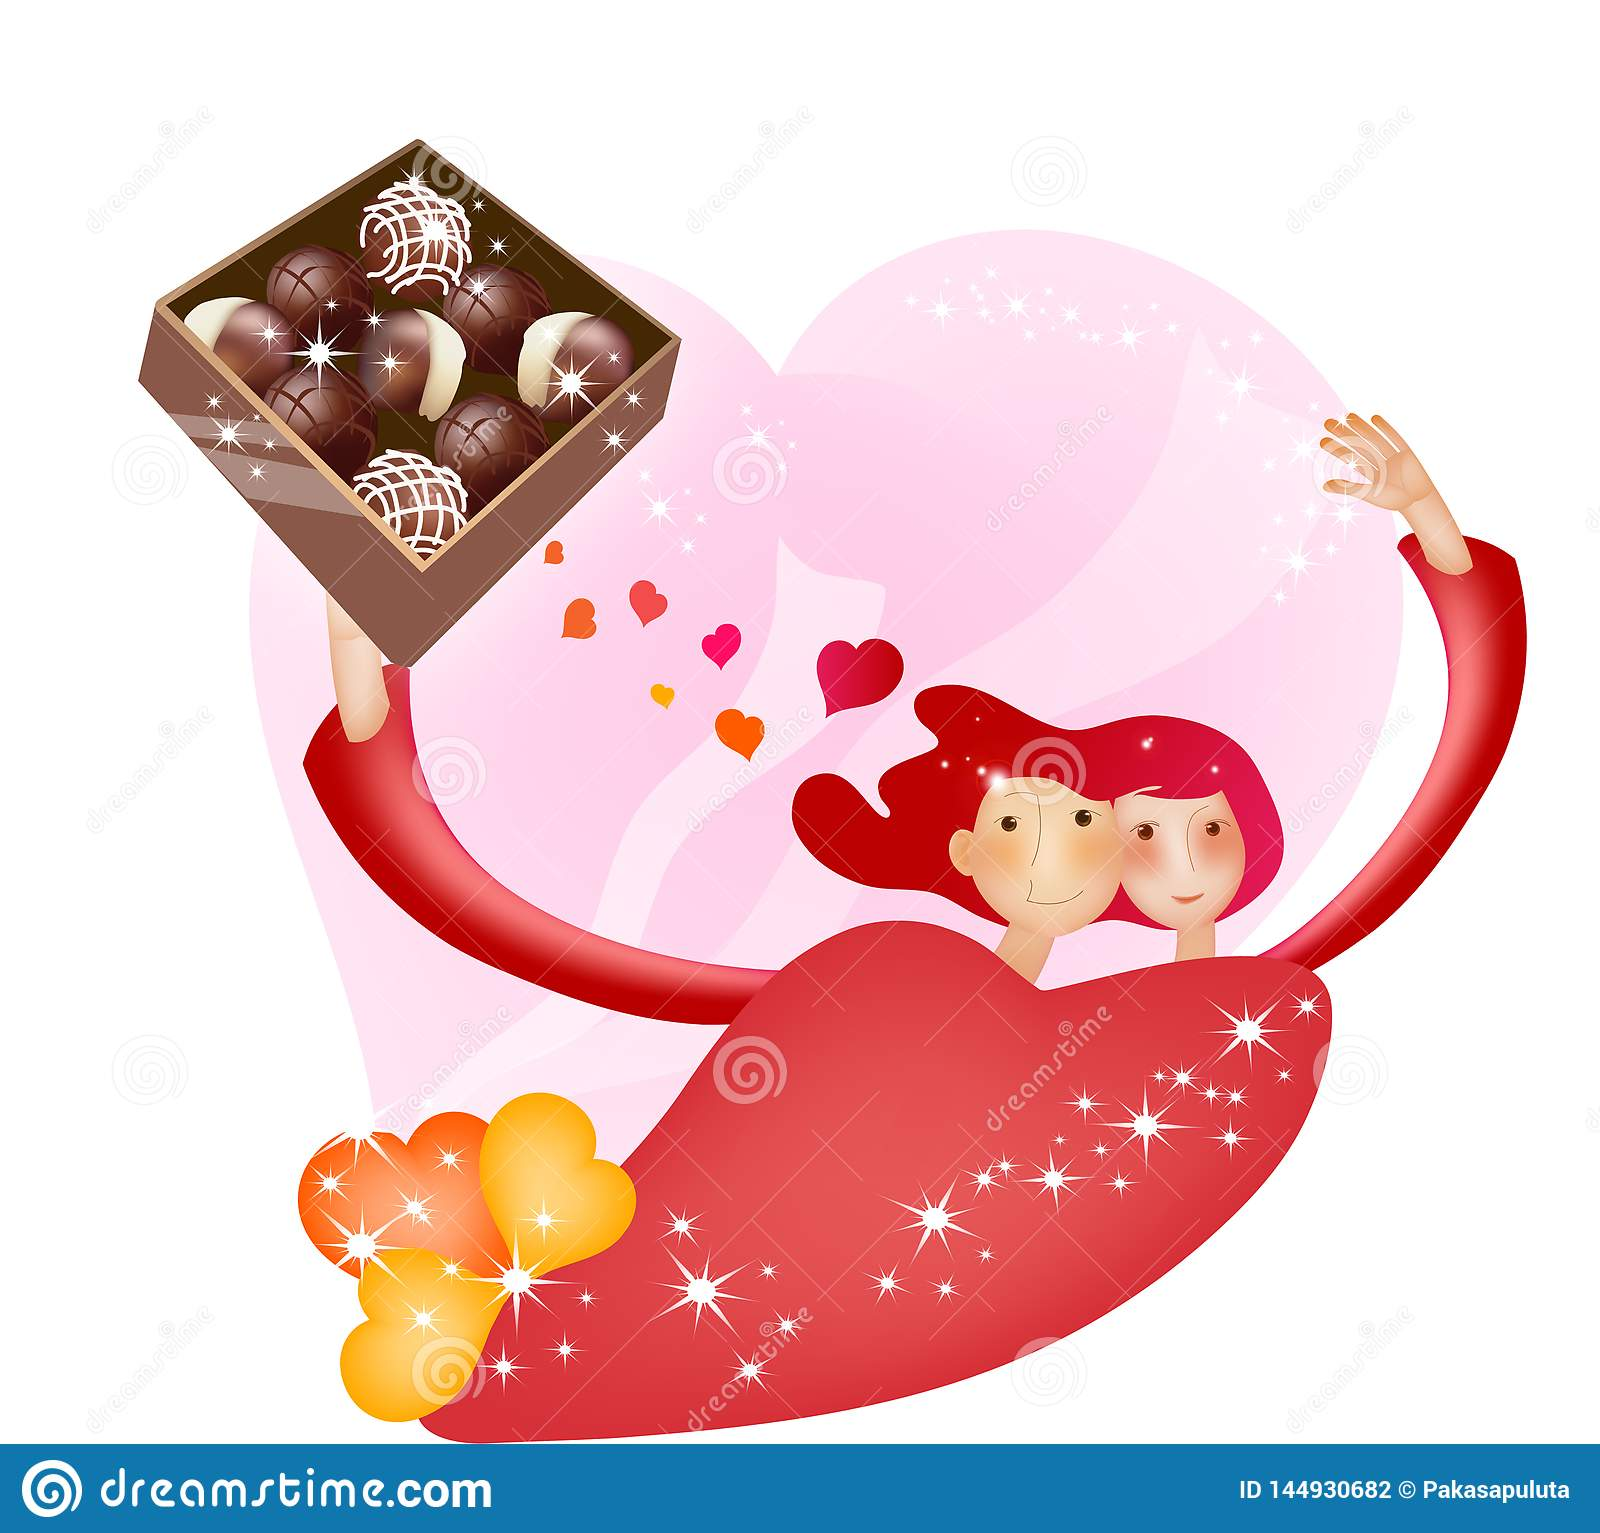 Lovely Cartoon Charactors for Christmas and Valentine`s Day